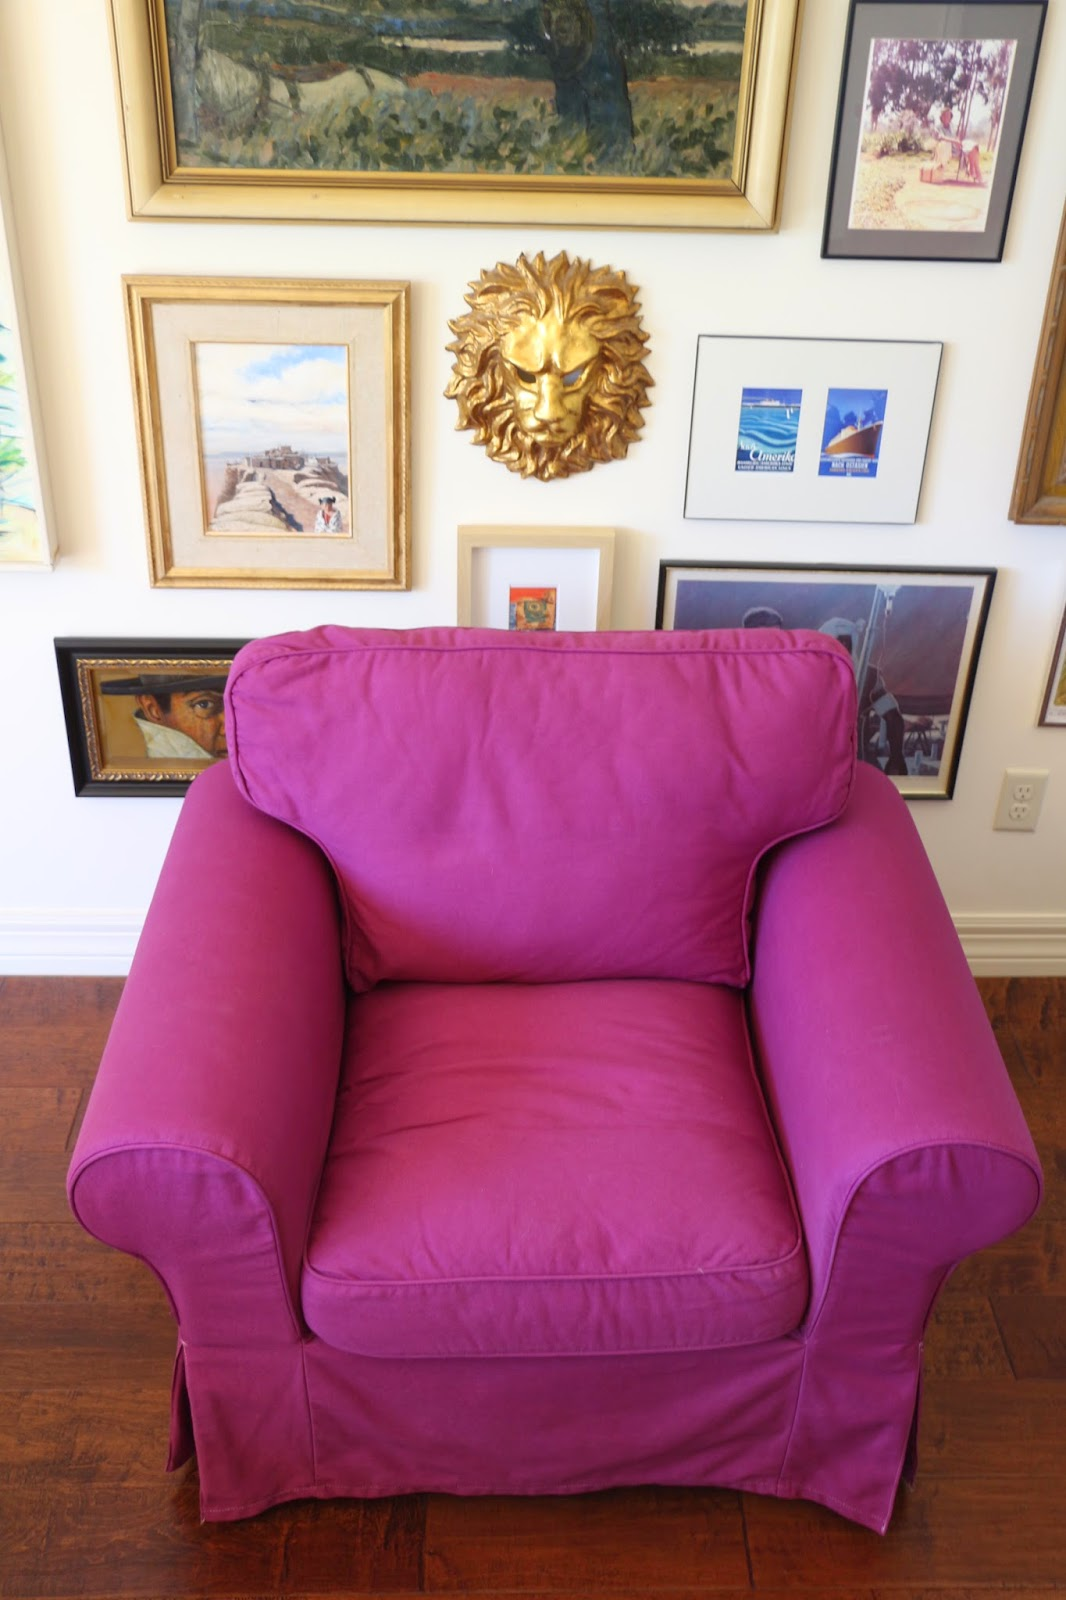 pink slipcover chair ergon 3 by herman miller dusty coyote dyeing an ektorp fuschia cover a